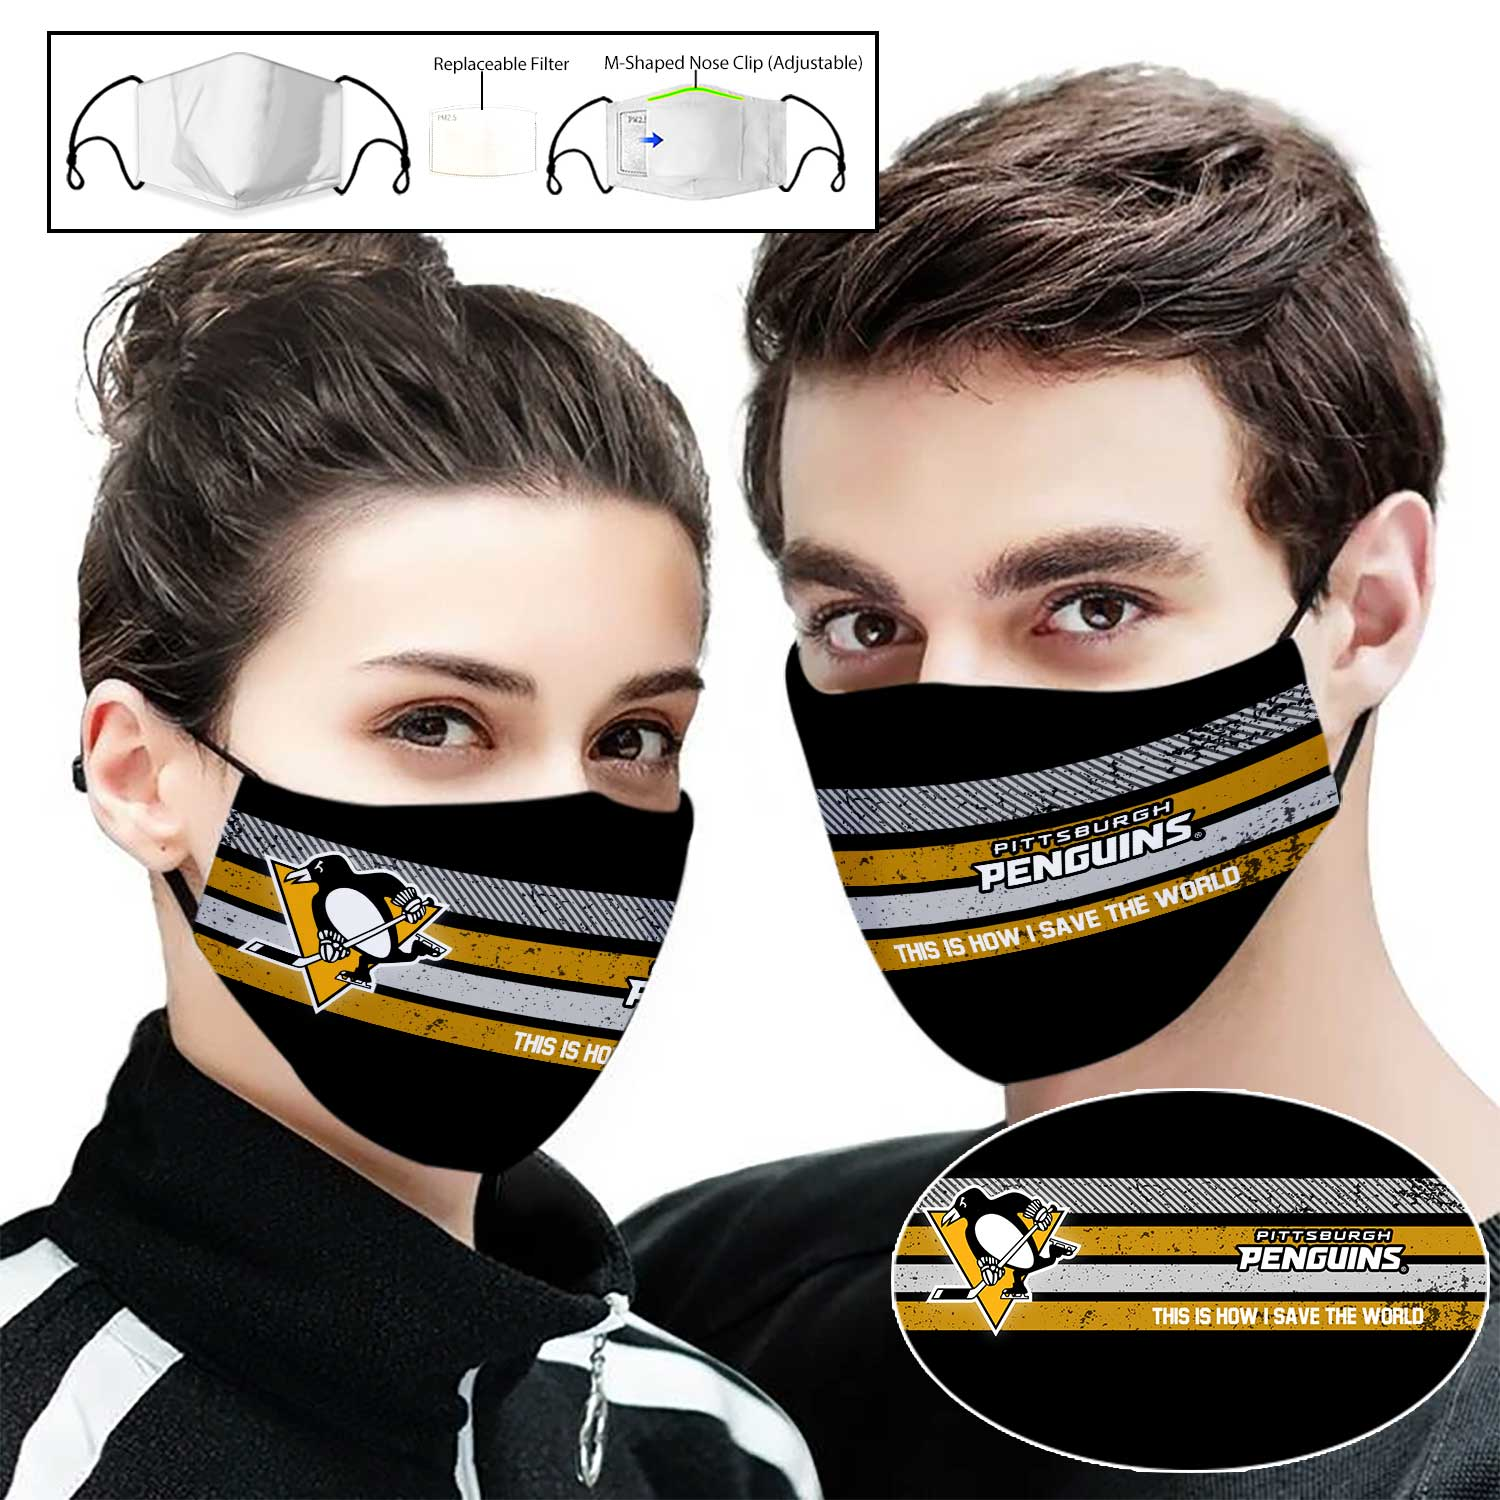 Pittsburgh penguins this is how i save the world face mask 1